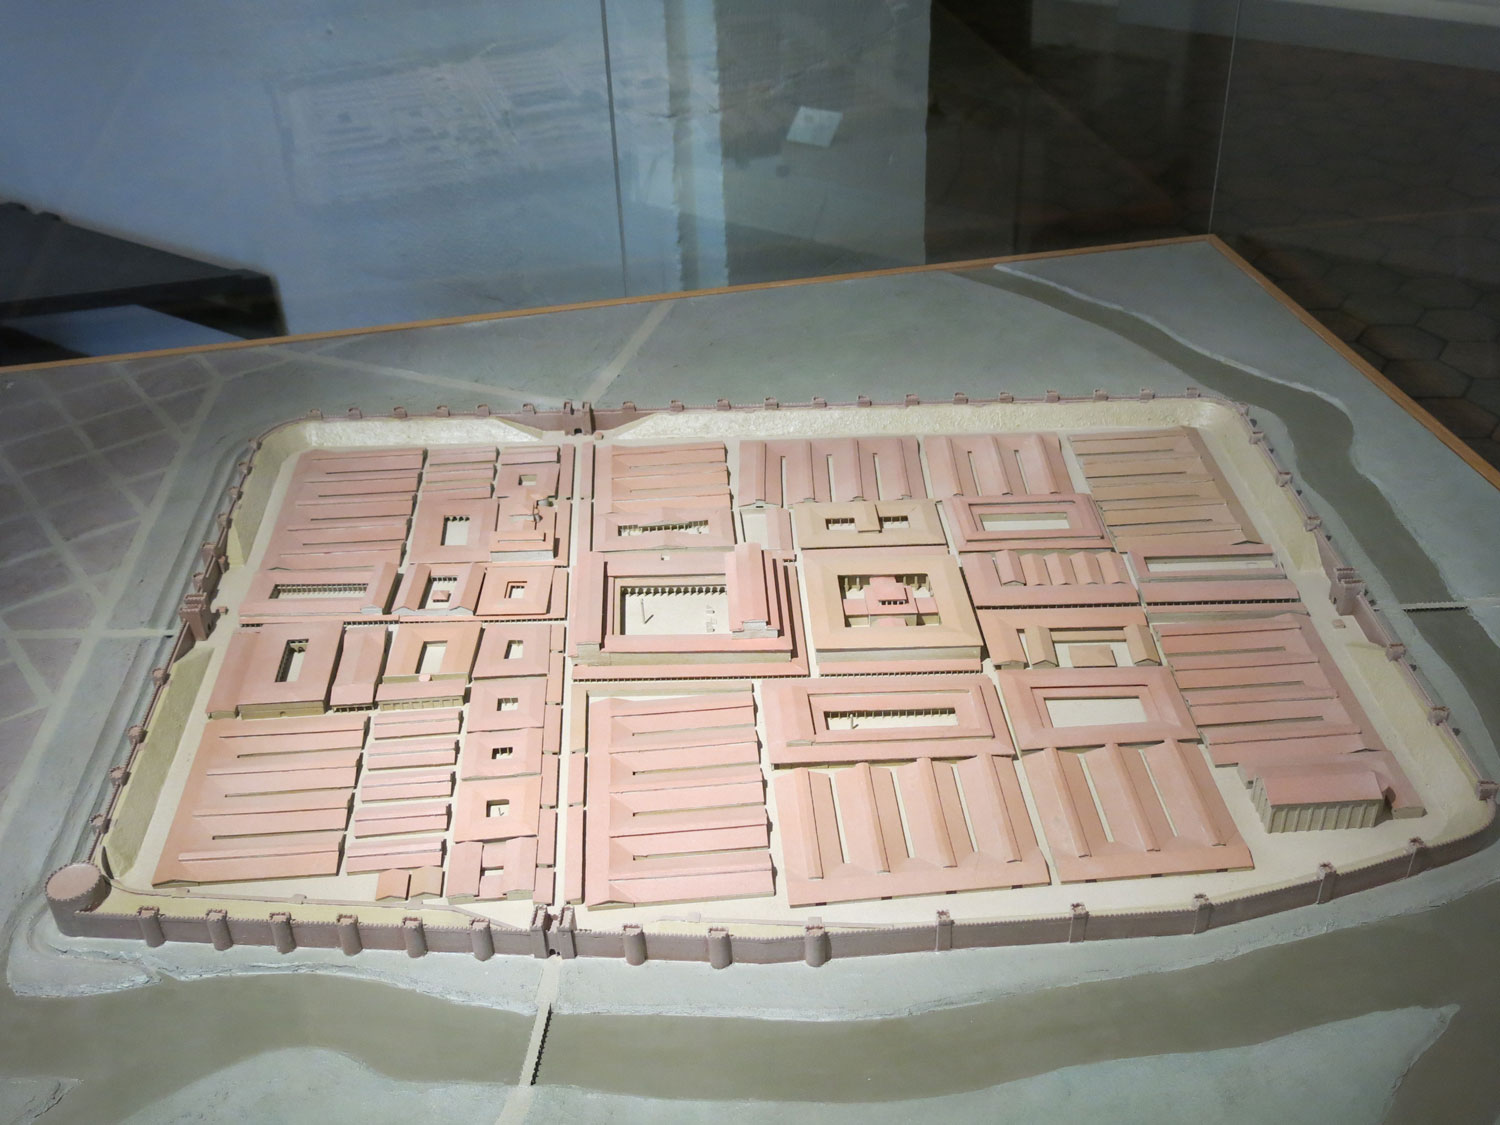 Model of the Roman camp of Argentoratum at the Archaeological Museum of Strasbourg